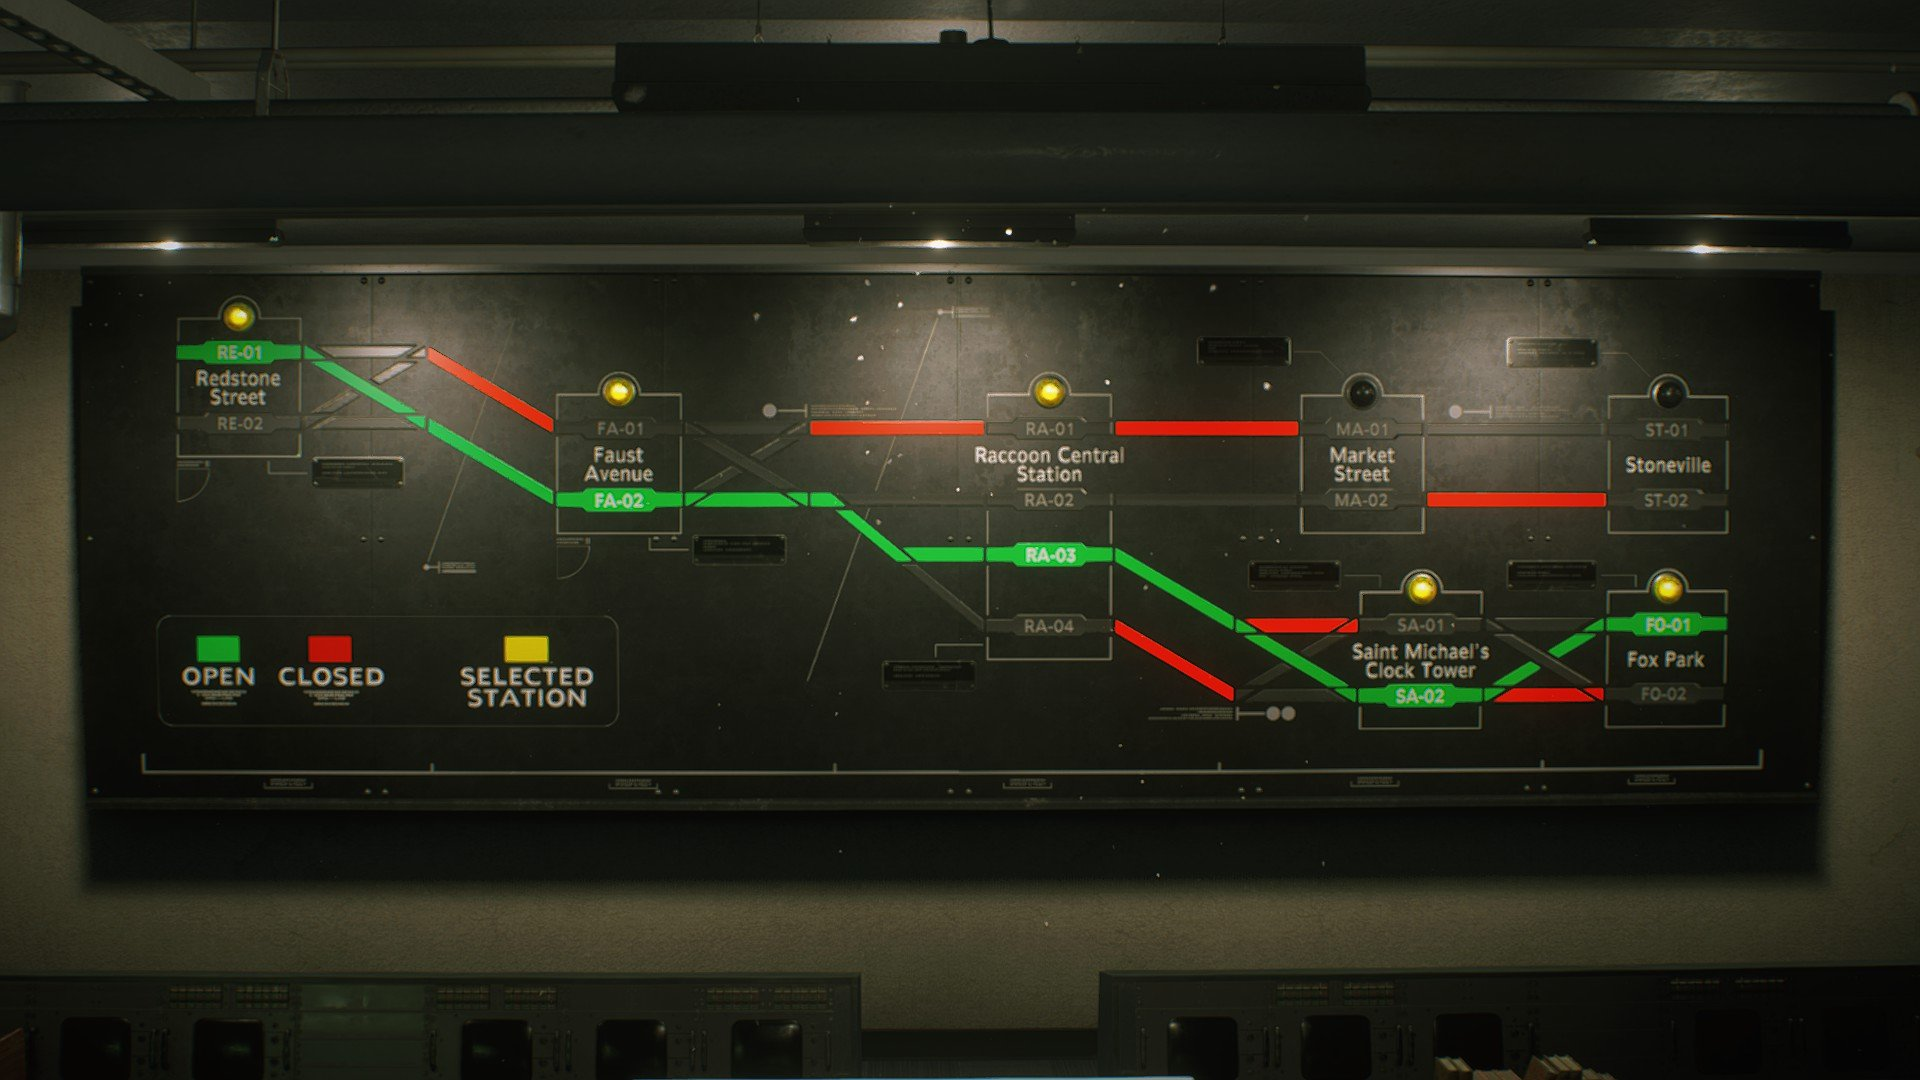 Resident Evil 3 subway train puzzle solution